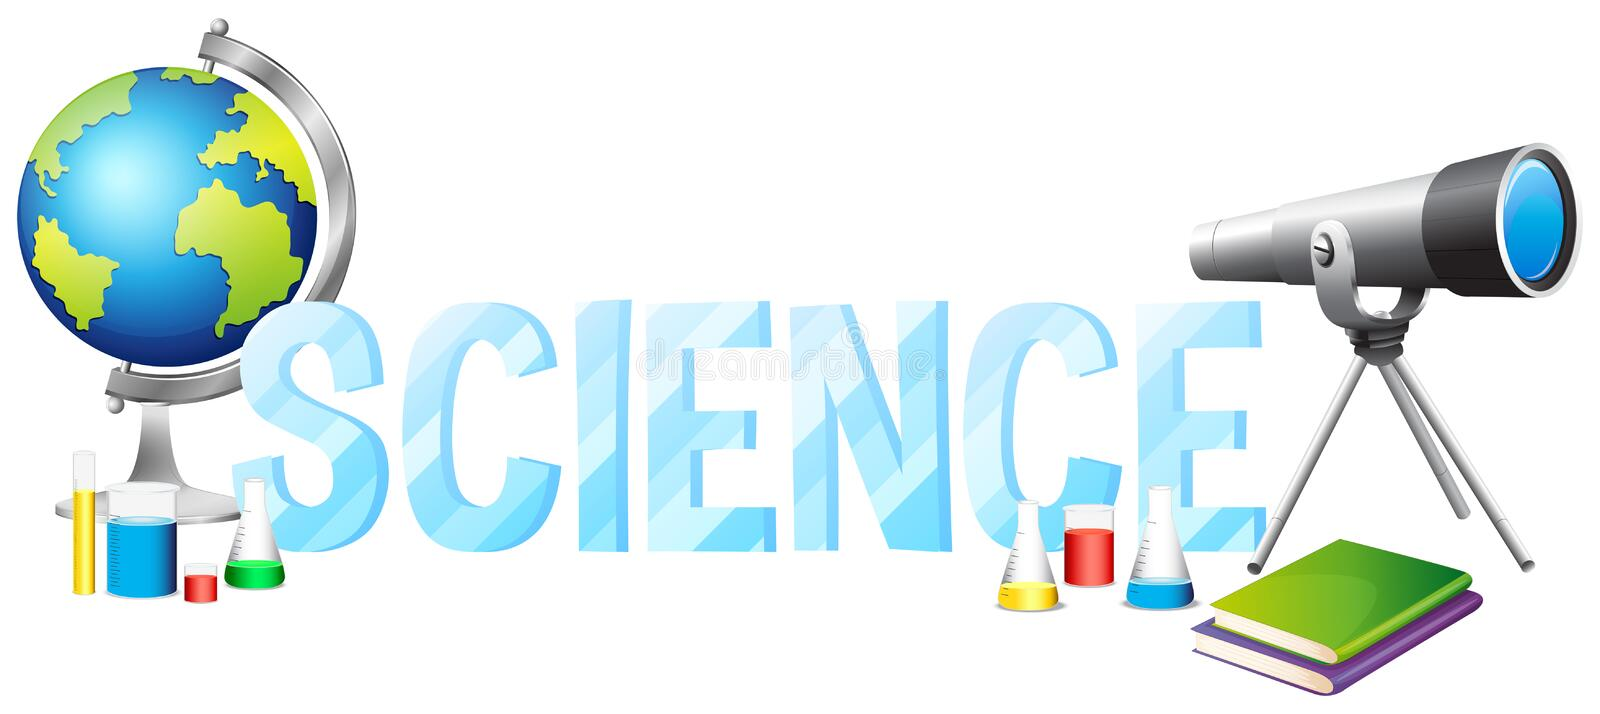 Font Design With Word Science Stock Vector - Illustration ...